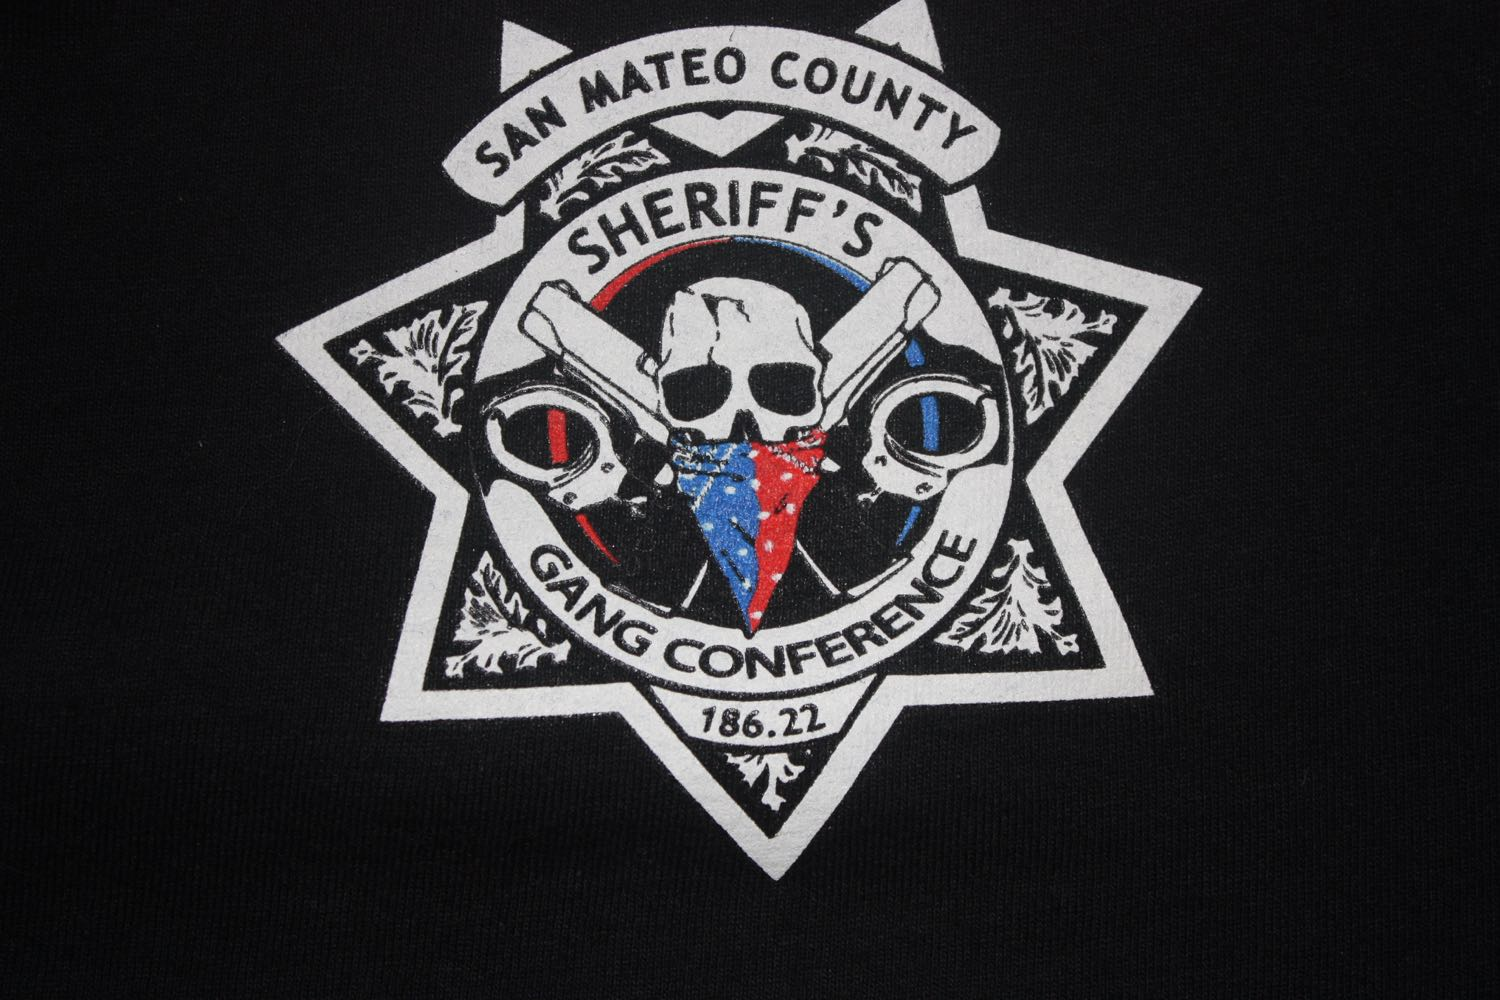 San Mateo County Sheriff Gang Conference